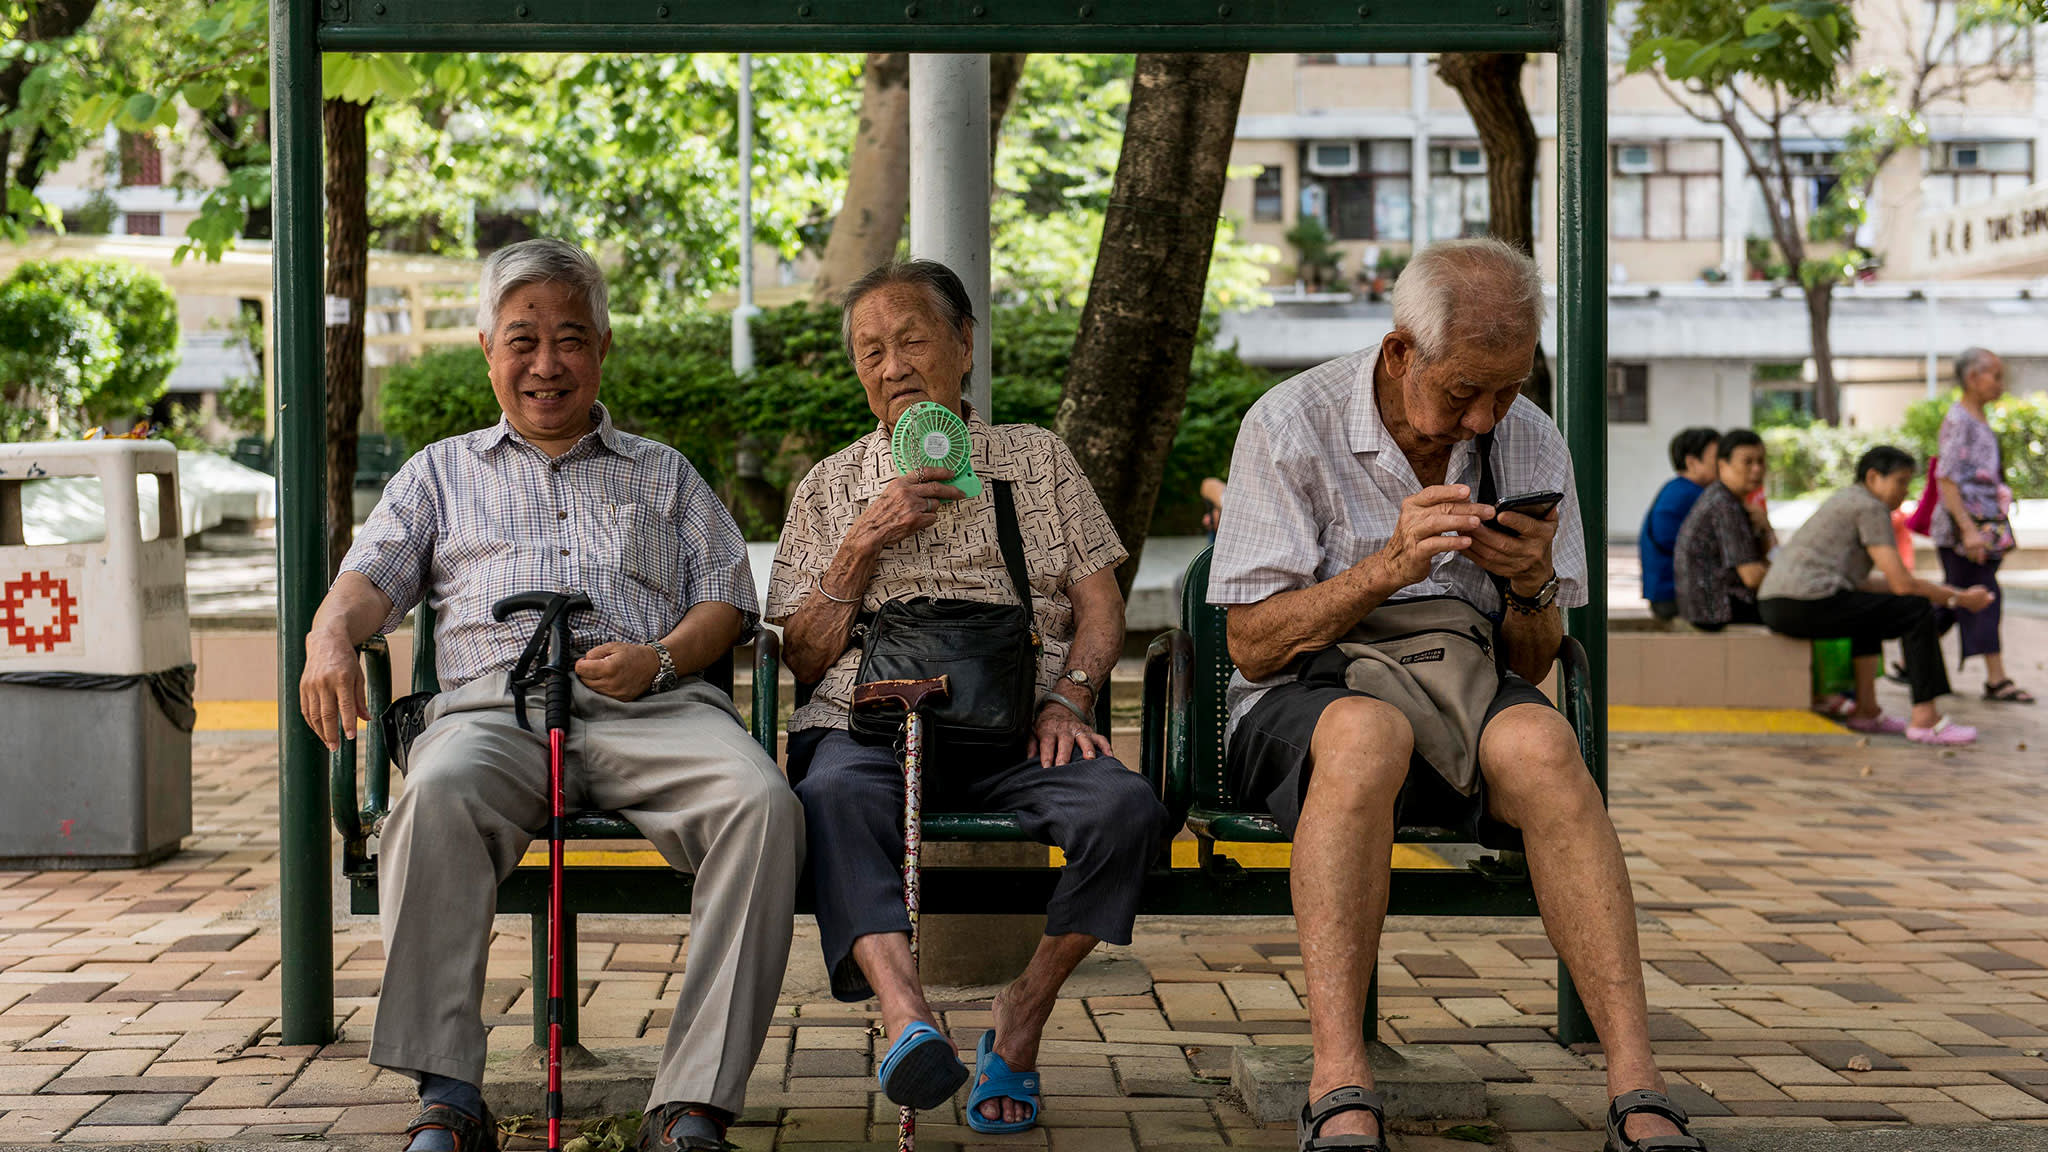 China working age population 'to fall 10% by 2040' | Financial Times